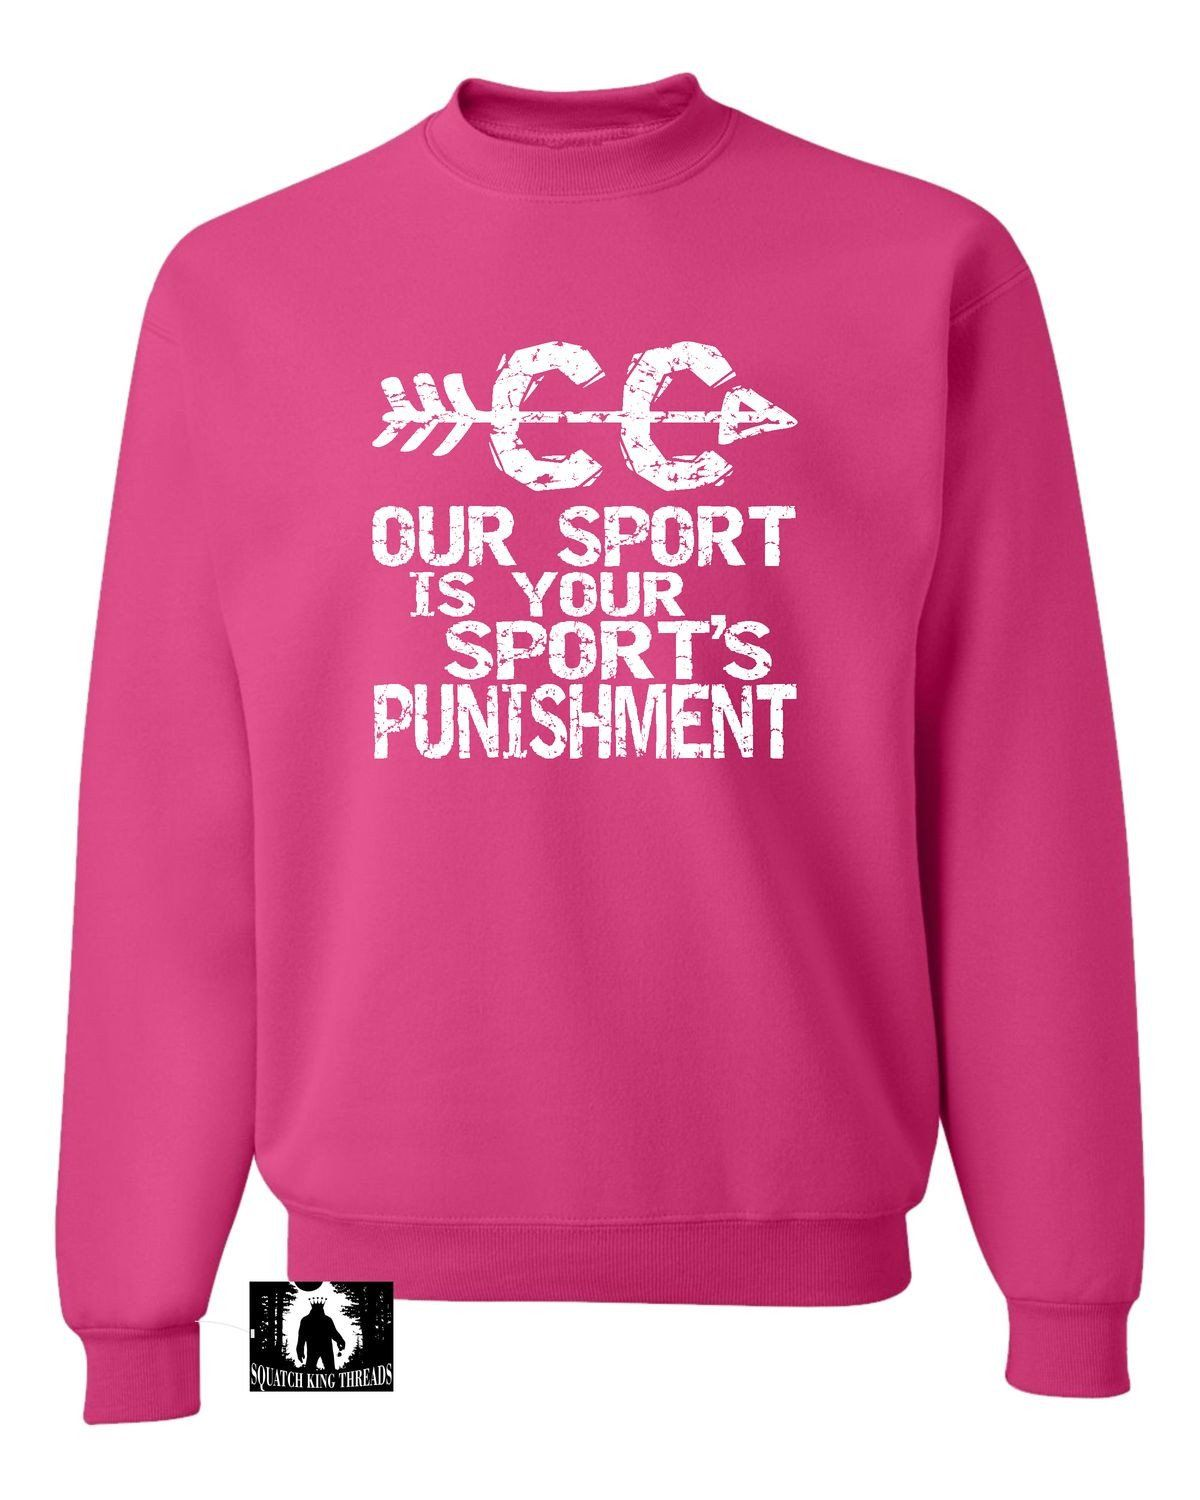 Adult Our Sport Is Your Sport's Punishment Cross Country Sweatshirt Crewneck